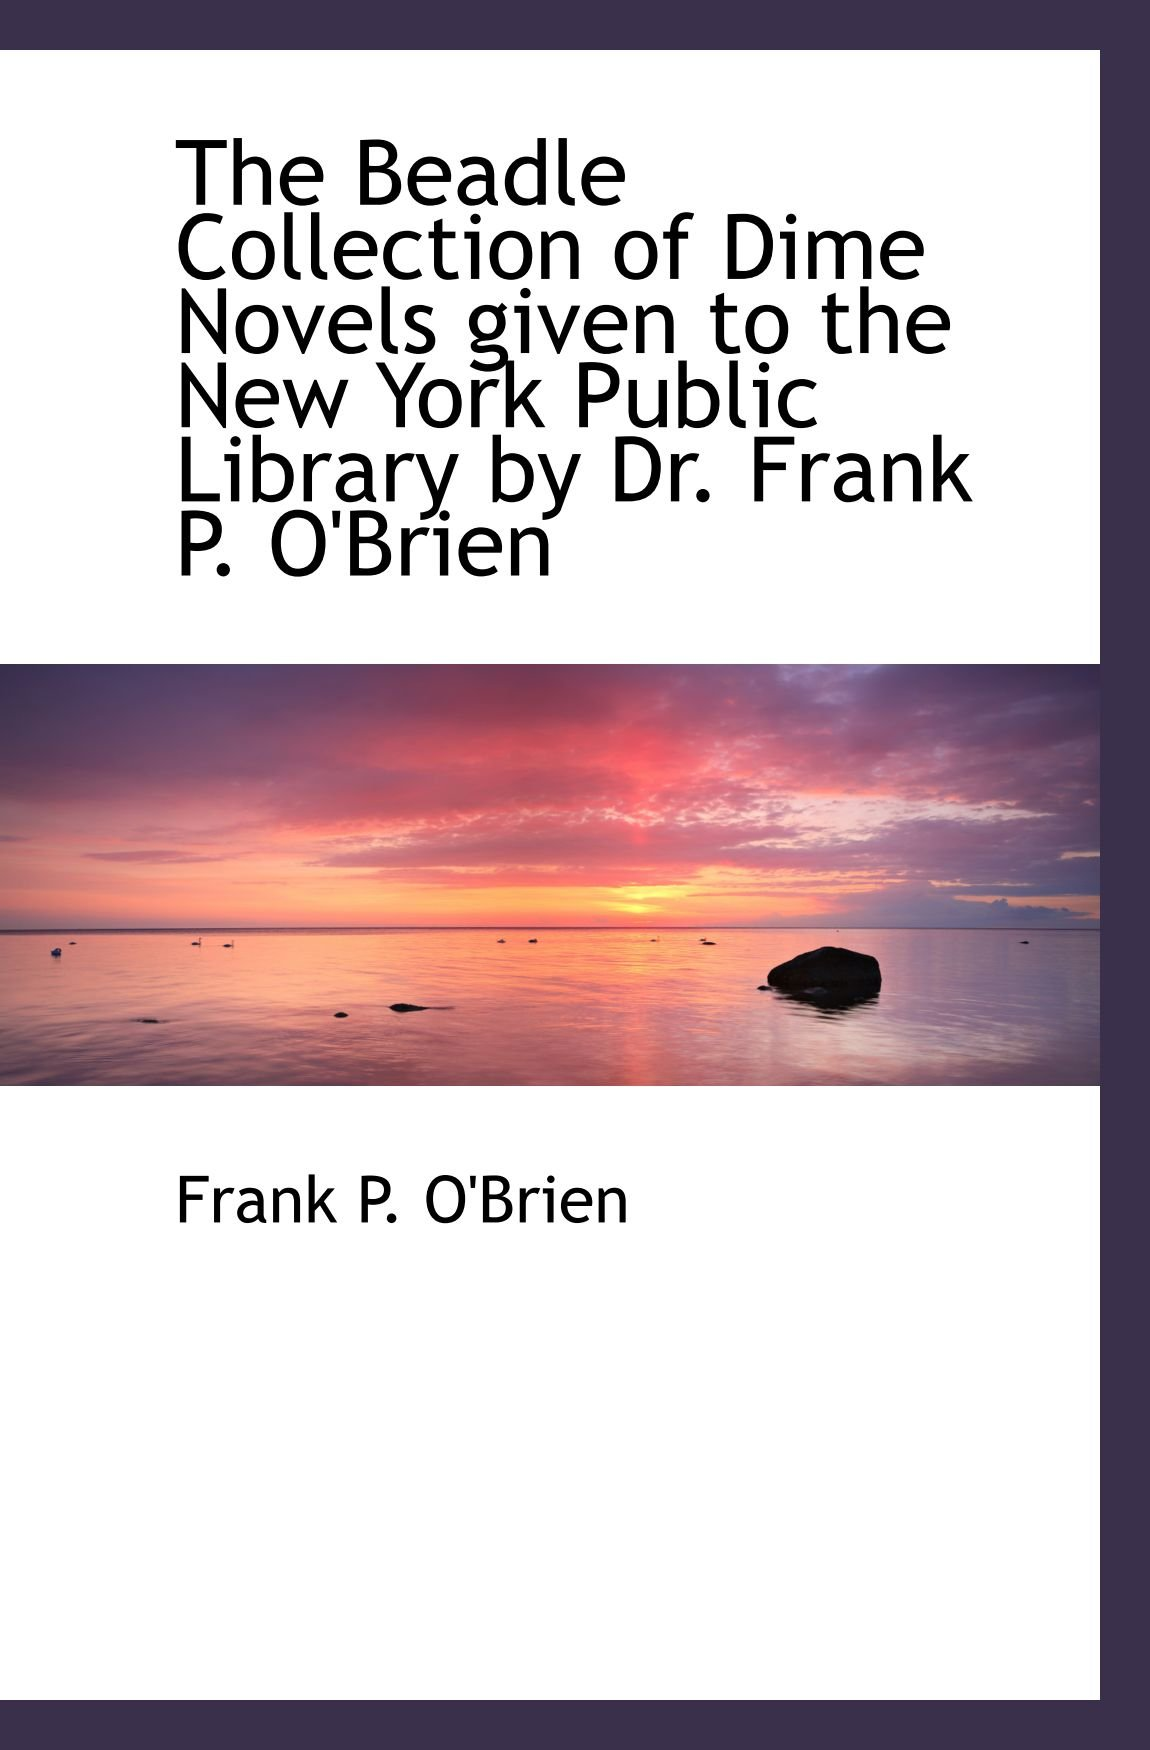 Read Online The Beadle Collection of Dime Novels given to the New York Public Library by Dr. Frank P. O'Brien PDF